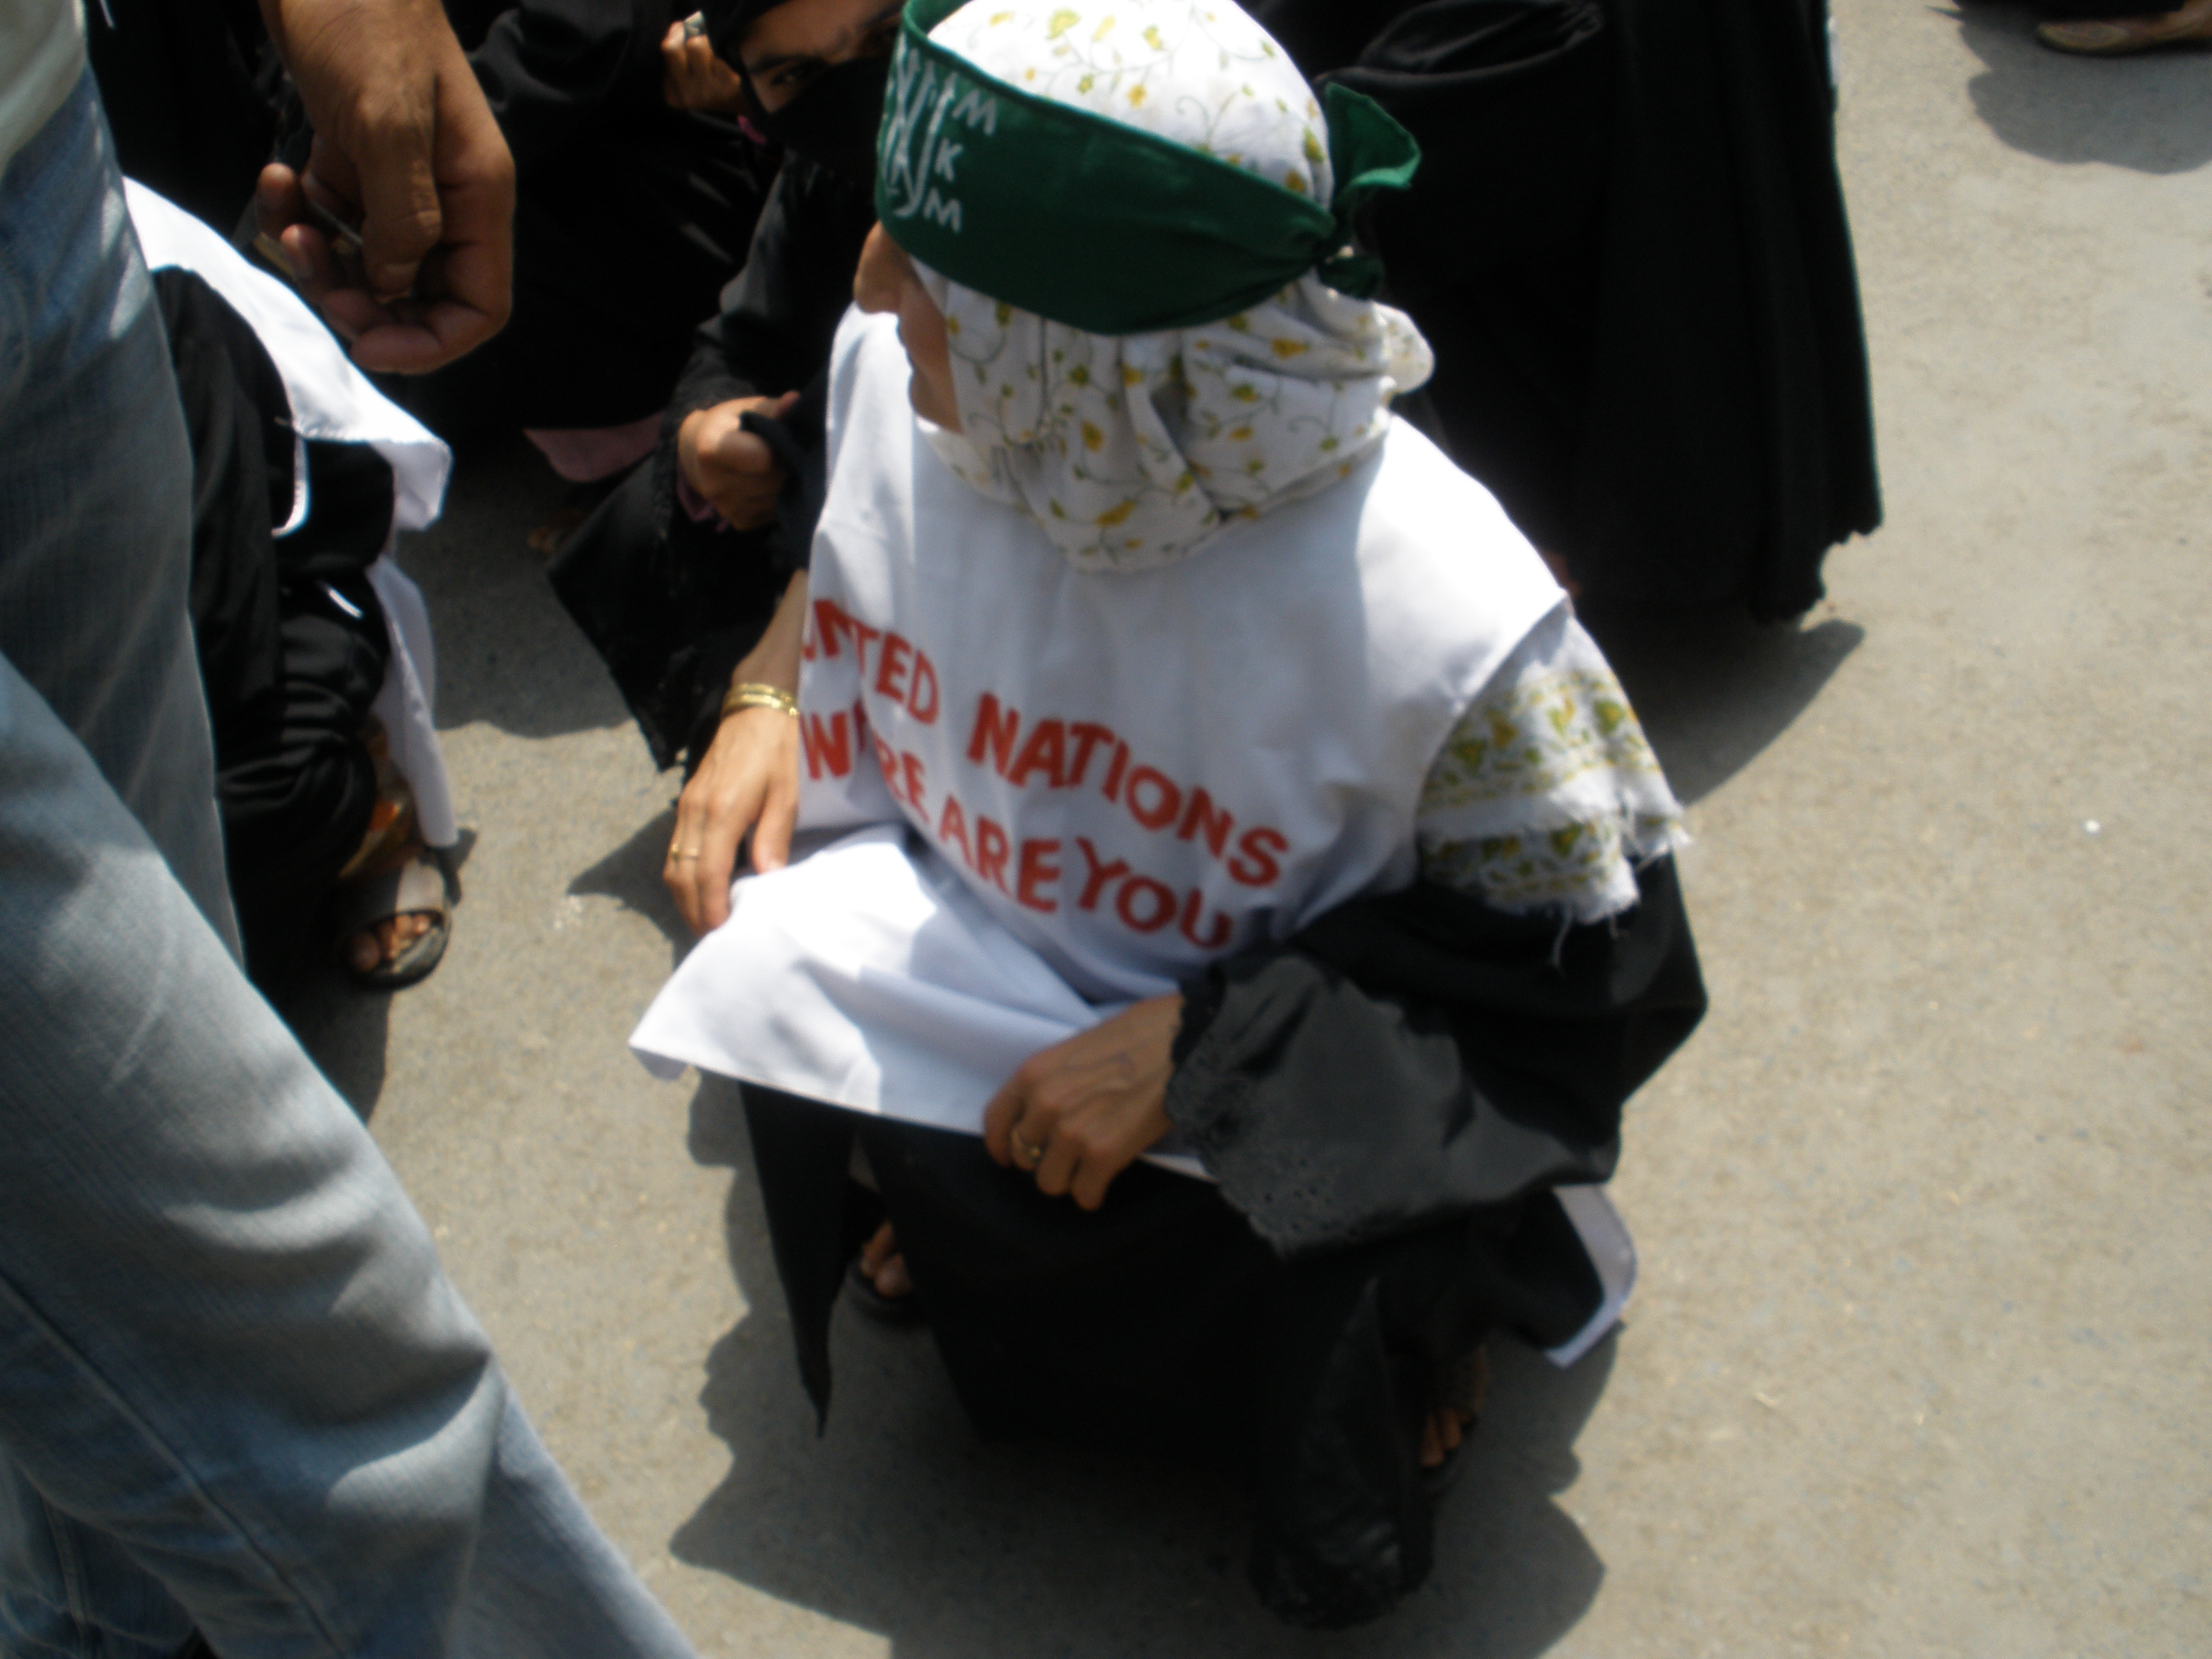 A protester kneels to the ground in a white banner calling on the international community to pay attention.